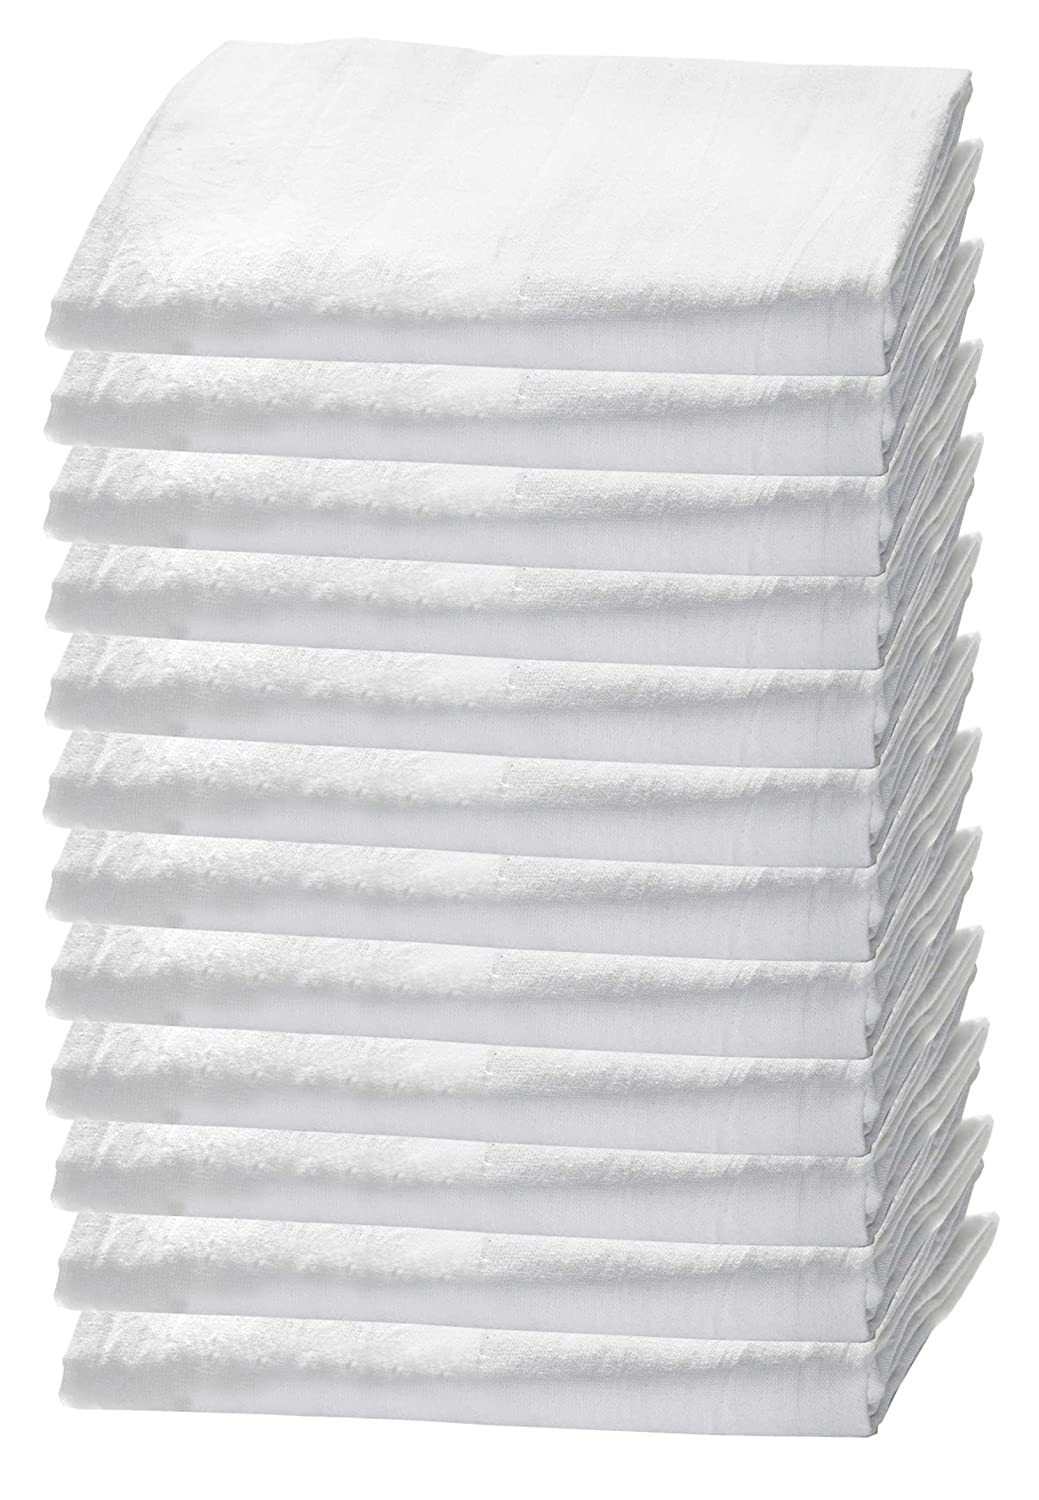 HomeLabels Kitchen 12 Pack Flour-Sack Towels, 100% Pure Rung Spin Cotton, Hand Towels, Multi-Purpose, Highly Absorbent